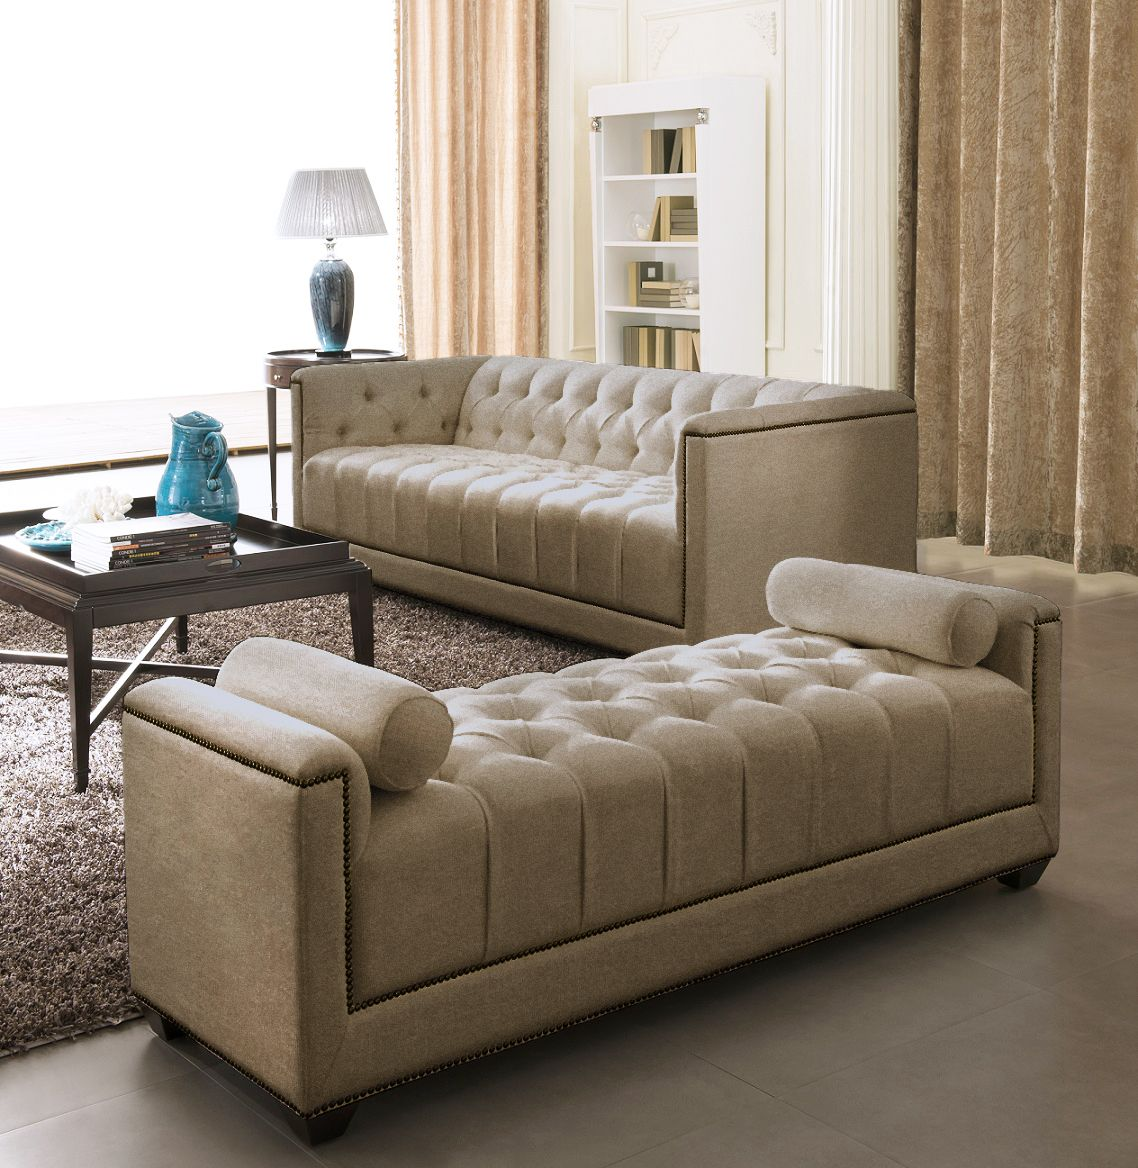 Fabric sofa set eden gold